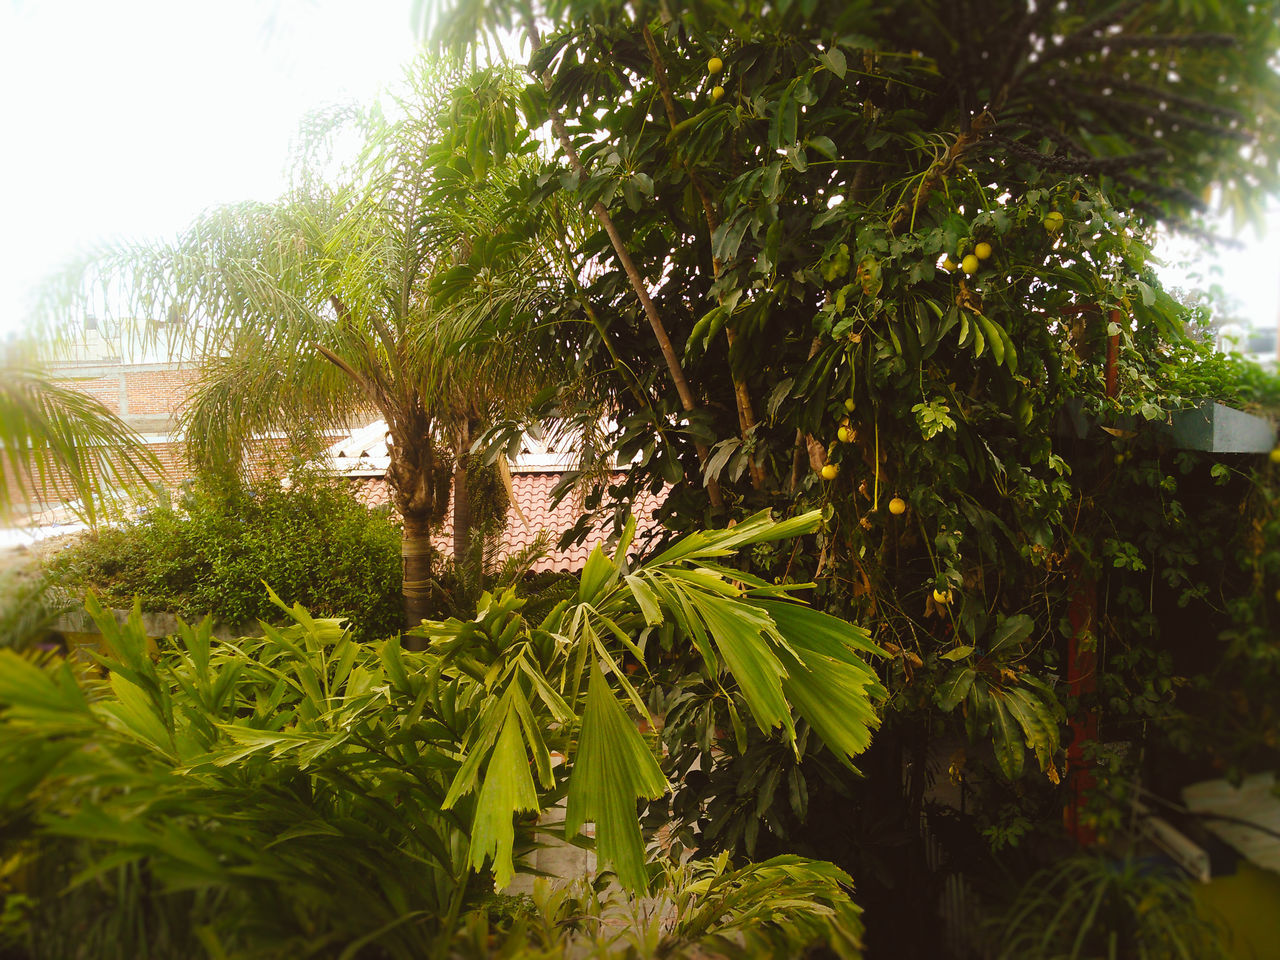 growth, green color, tree, palm tree, plant, nature, leaf, day, tranquility, no people, outdoors, banana tree, beauty in nature, grass, sky